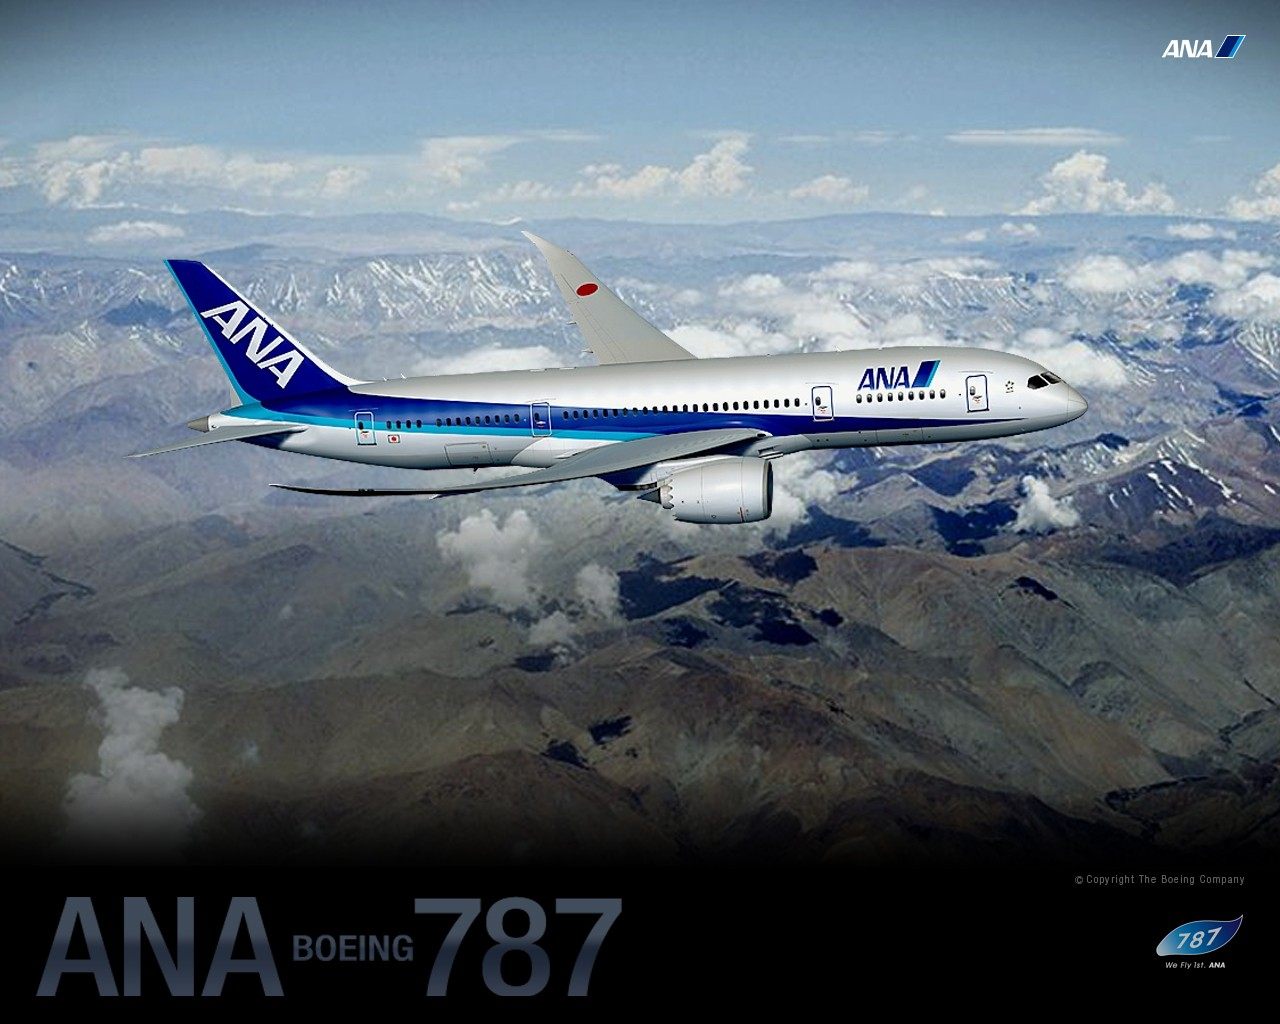 ANA All Nippon Airways Boeing Dreamliner wallpaper 30456